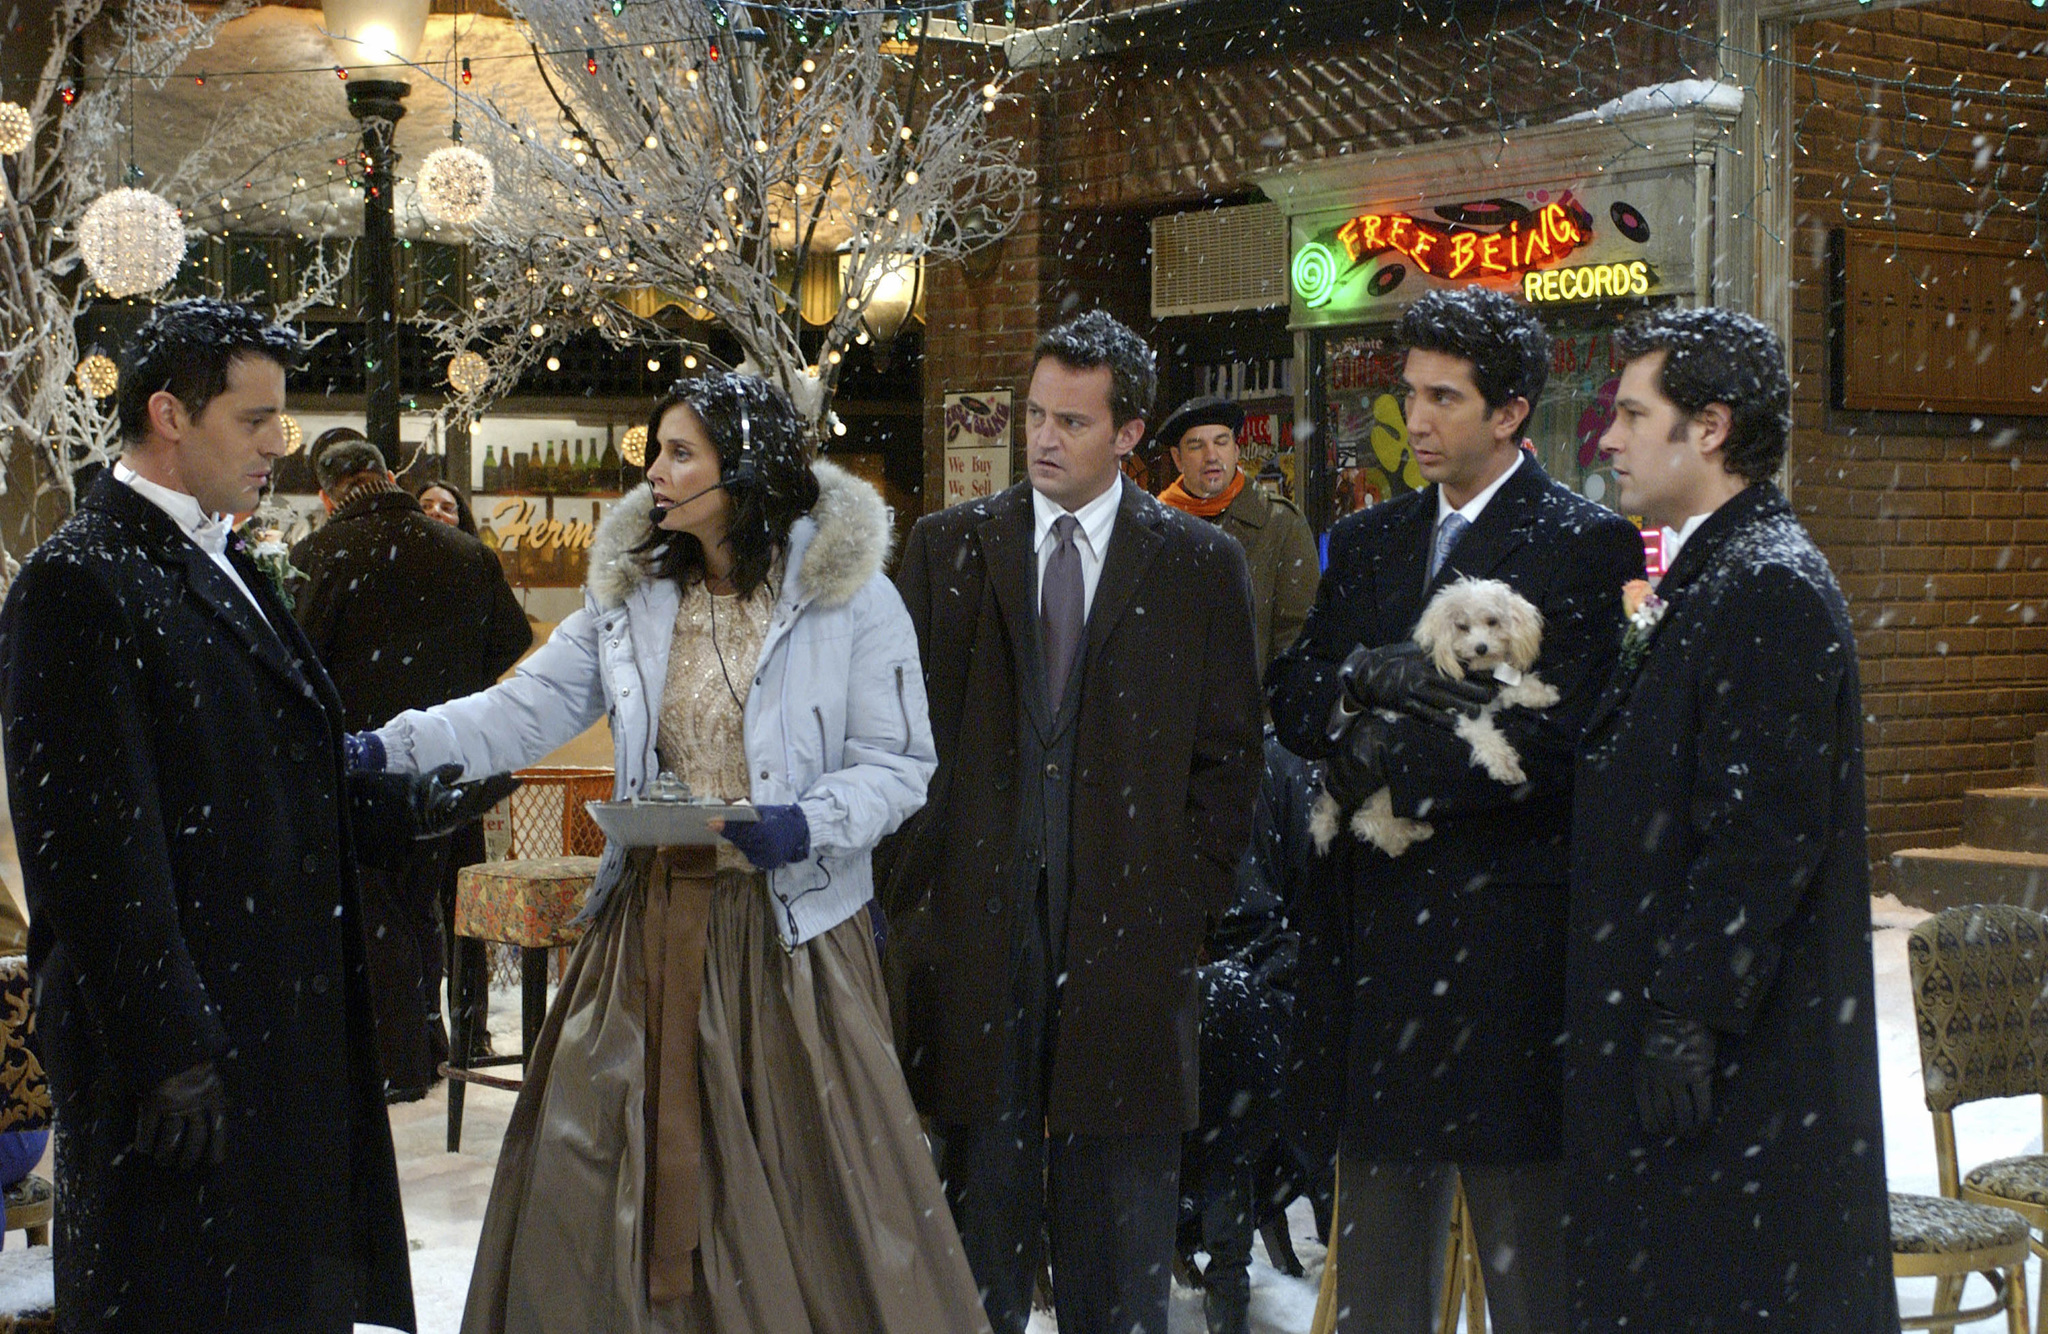 Friends The One With Phoebes Wedding Tv Episode 2004 Imdb